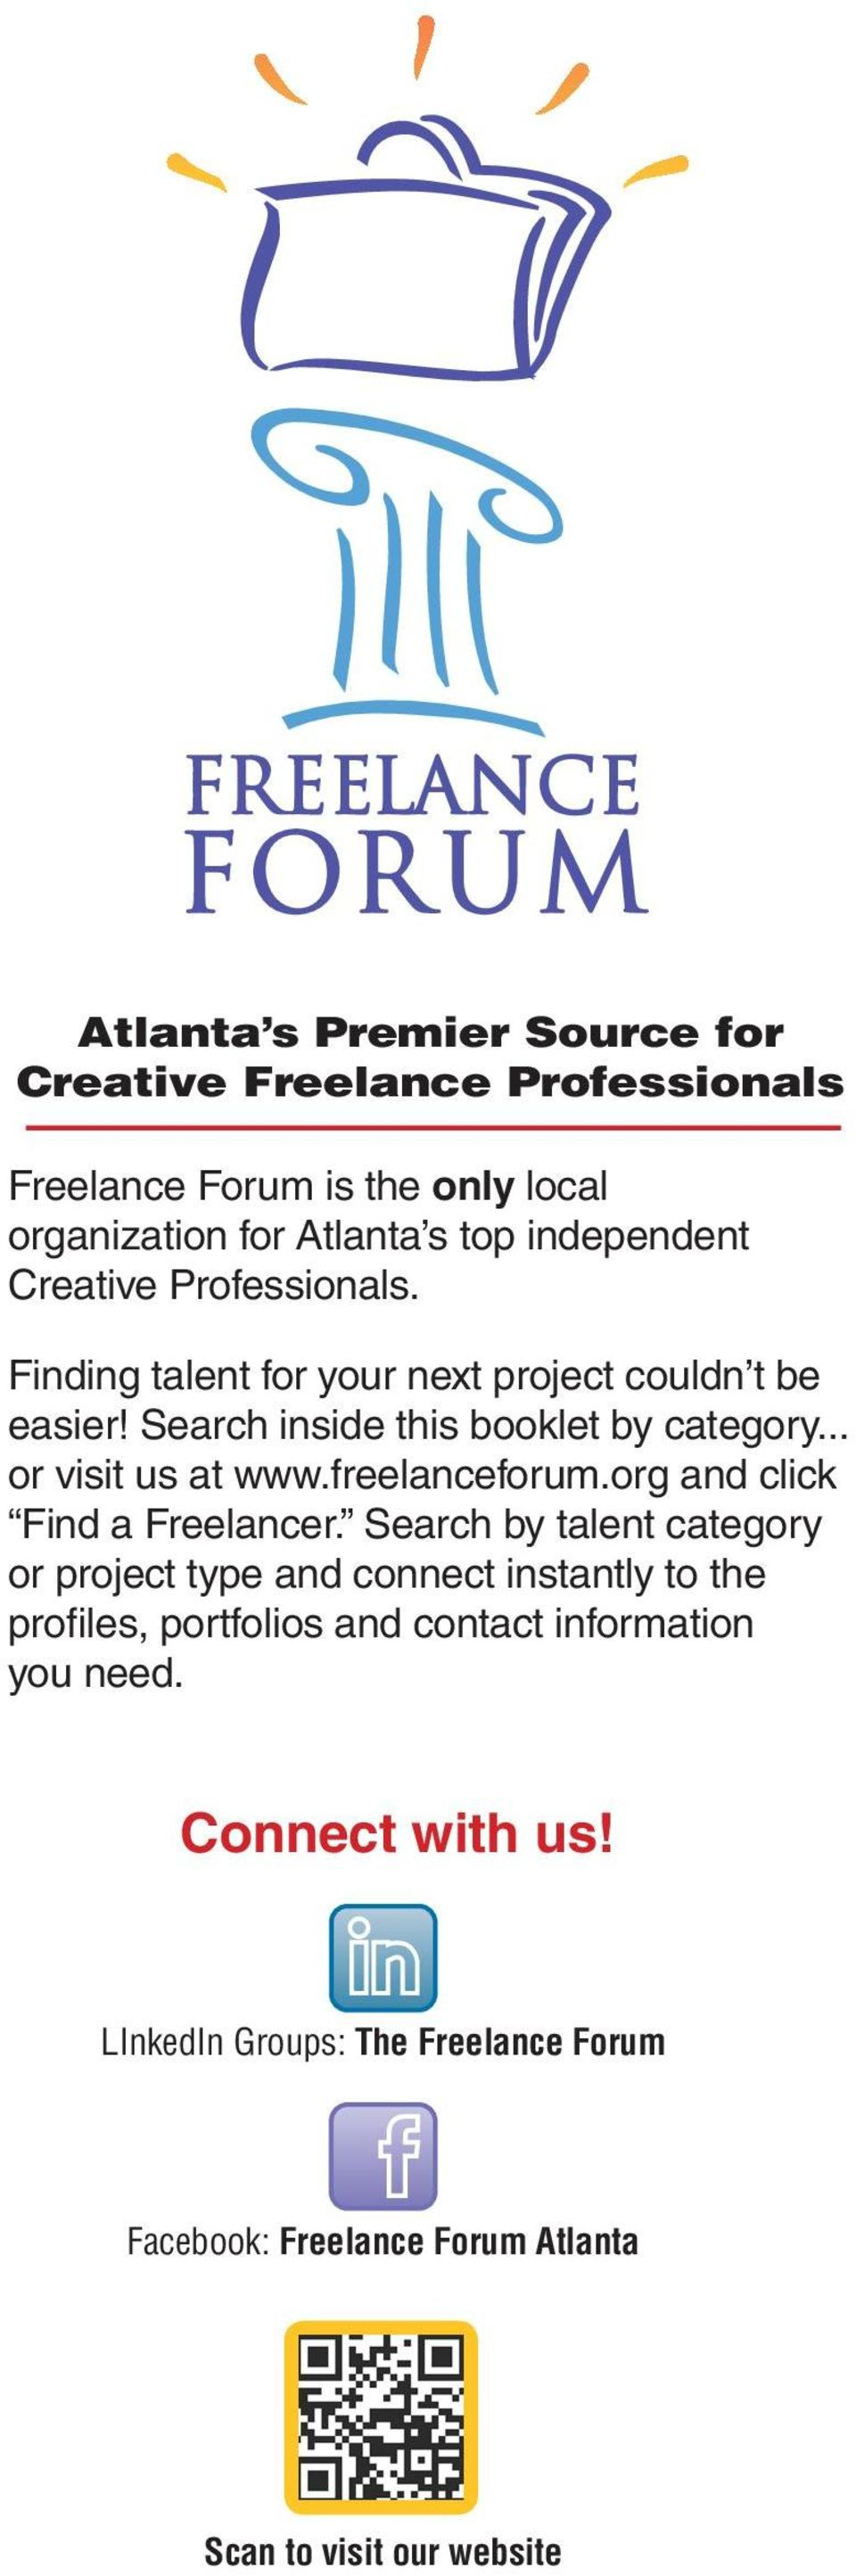 freelanceforum.org and click Find a Freelancer.